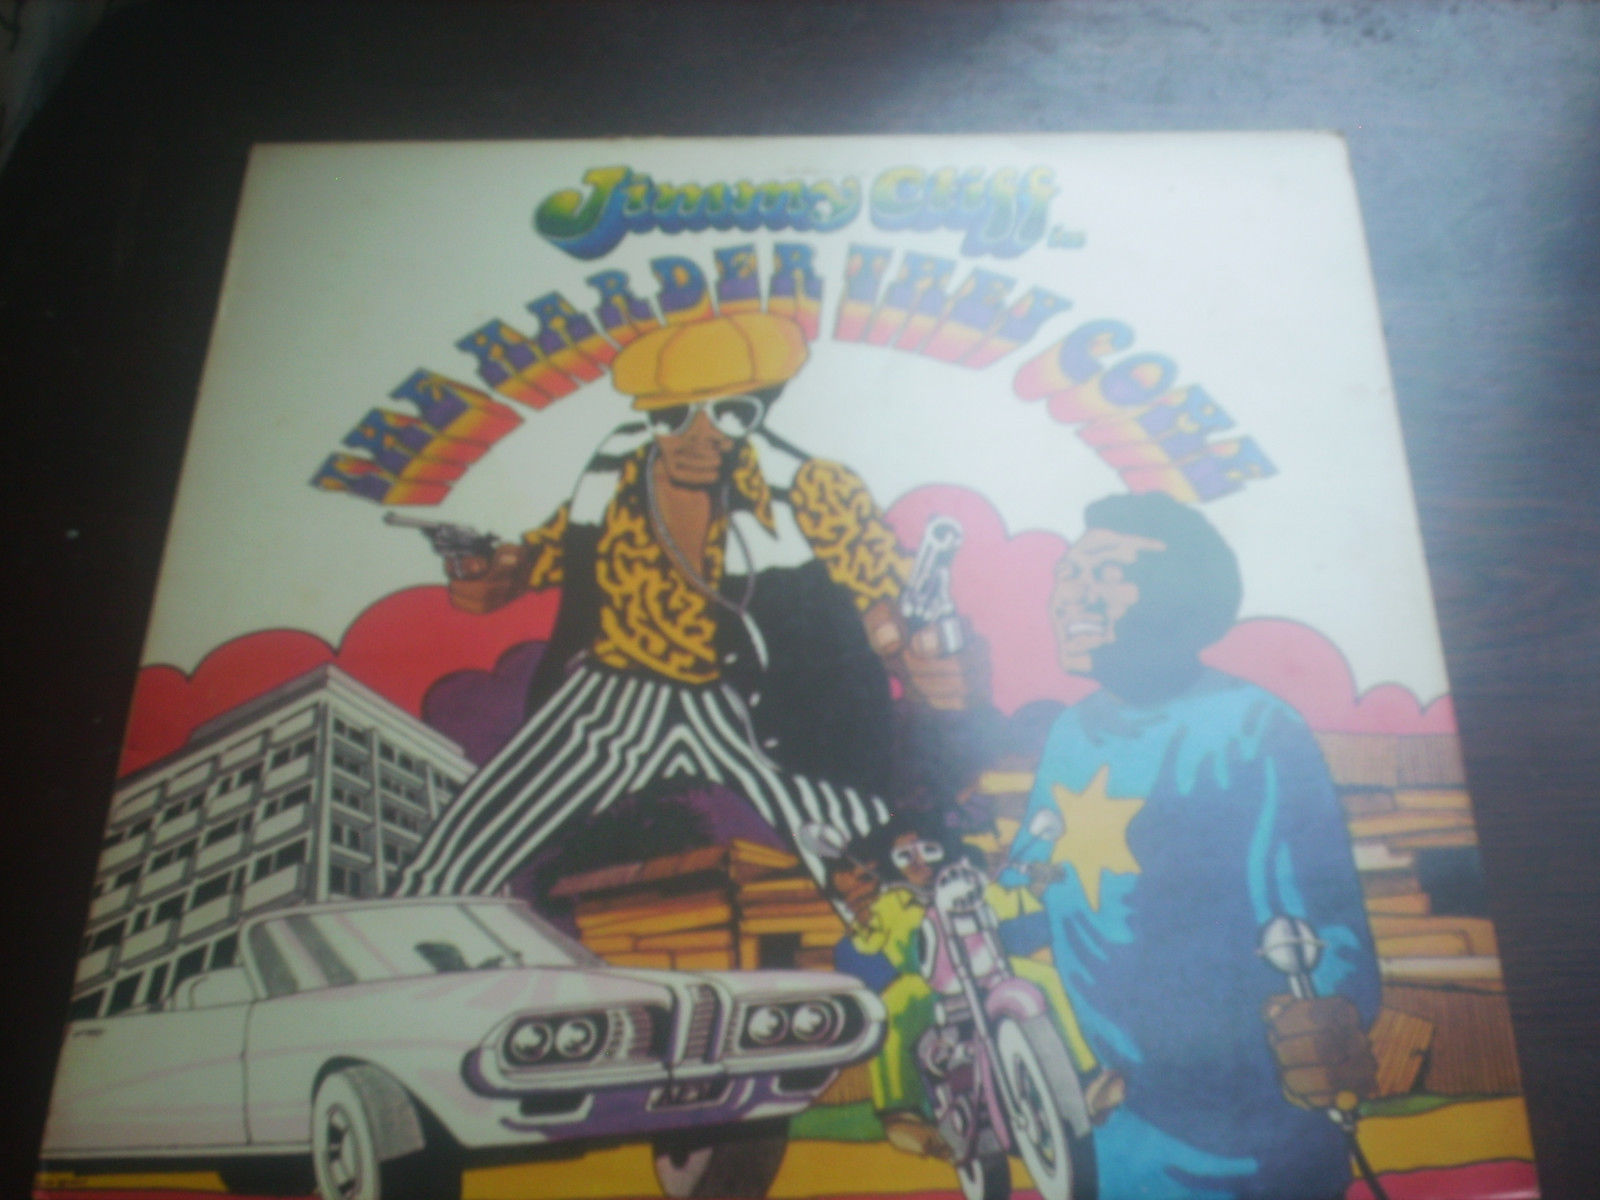 "JIMMY CLIFF The Harder They Come 12"" vinyl lp/albim ILPS 9202"